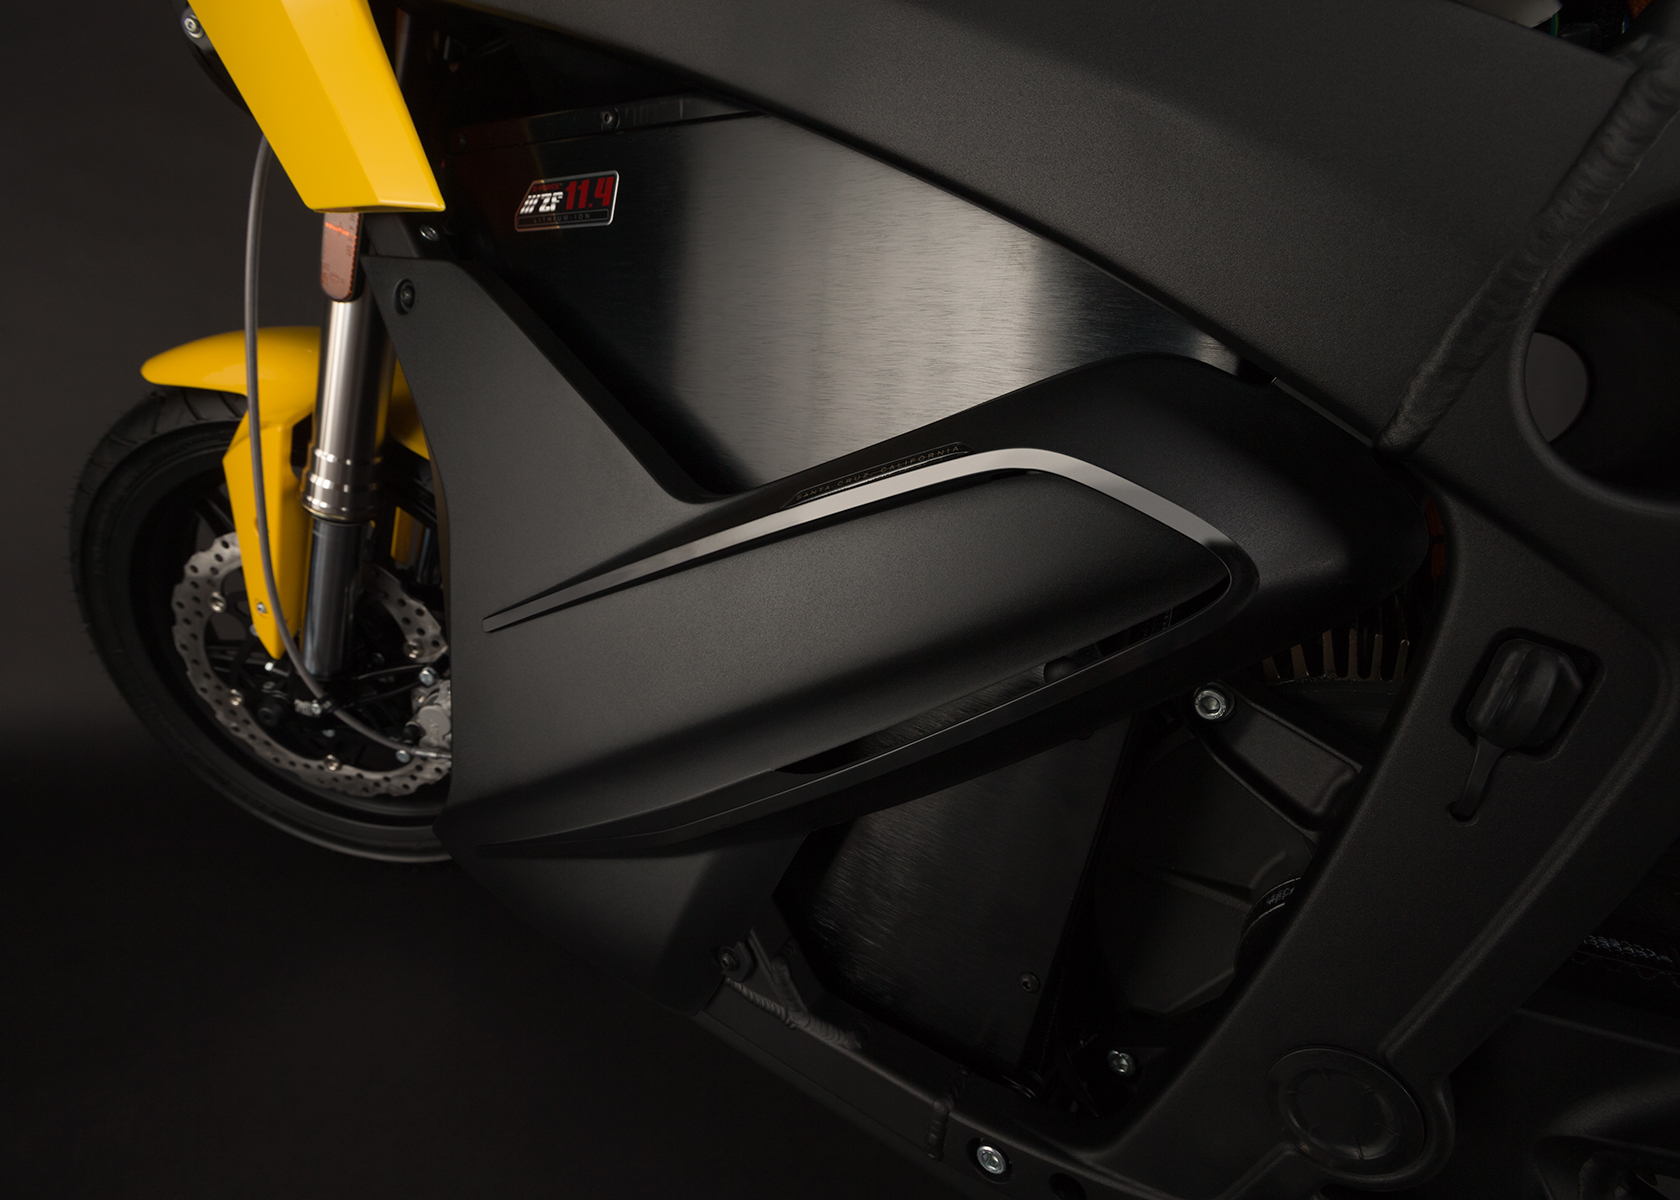 2014 Zero S Electric Motorcycle: Chin Fairing